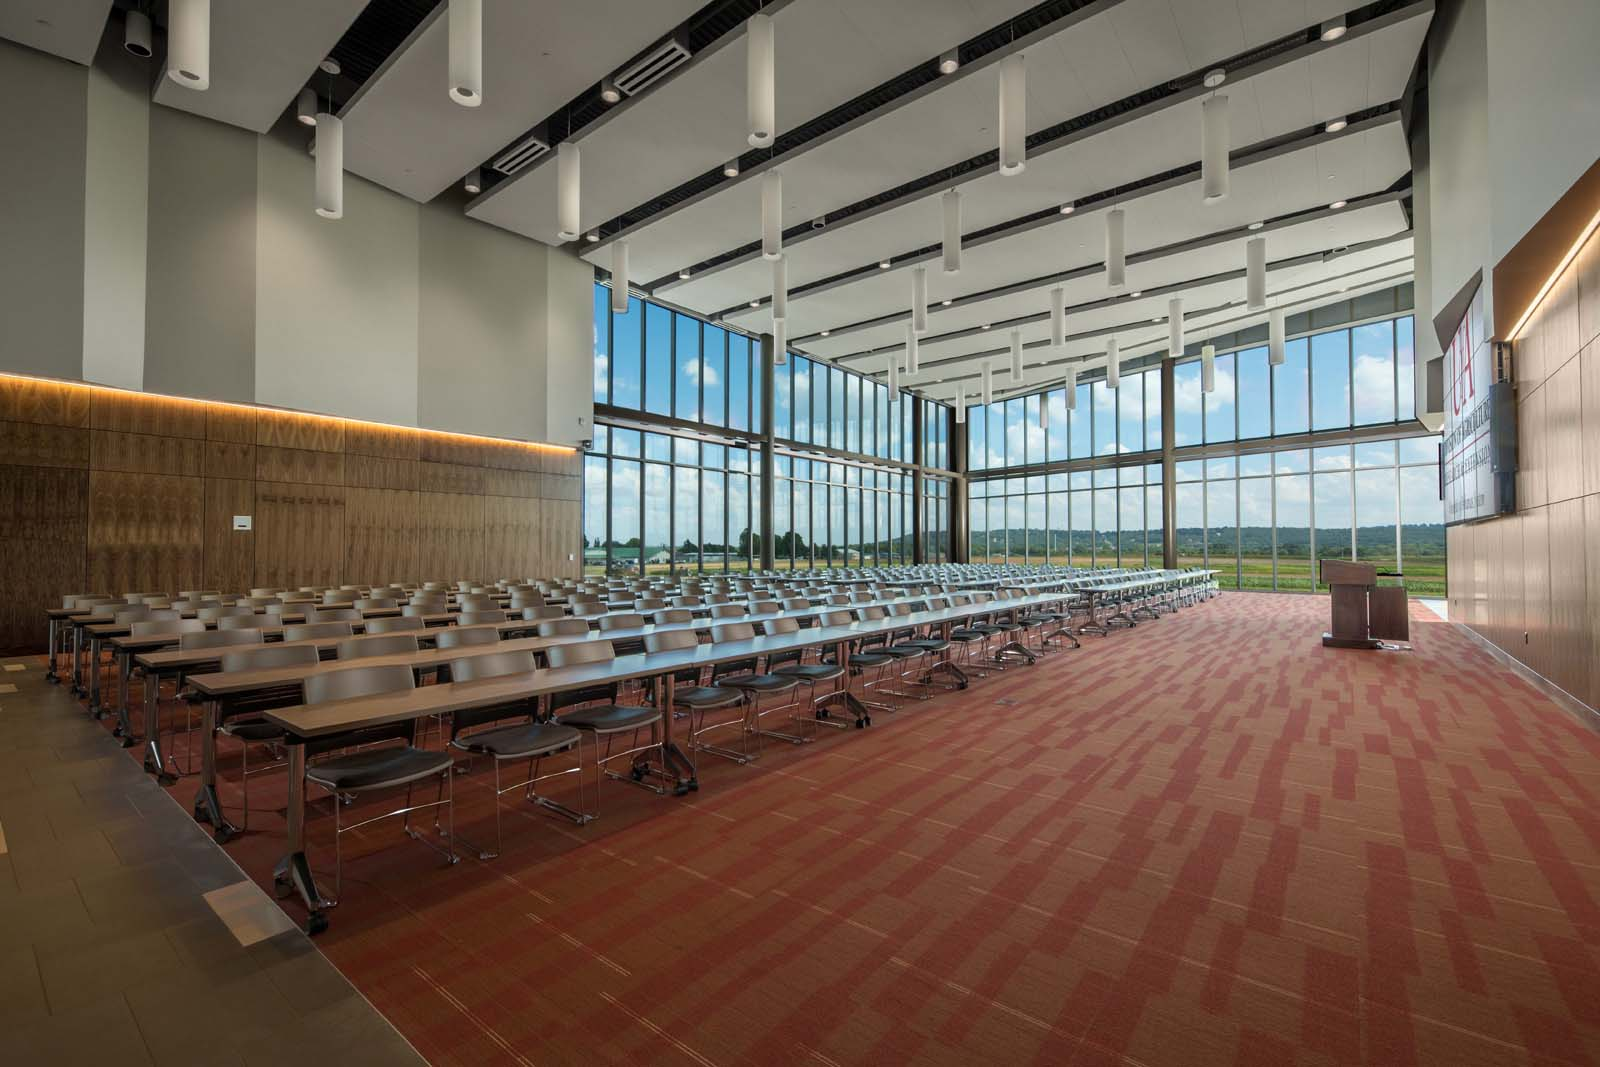 Don Tyson Center for Agricultural Sciences  University of Arkansas  VIEW PROJECT →